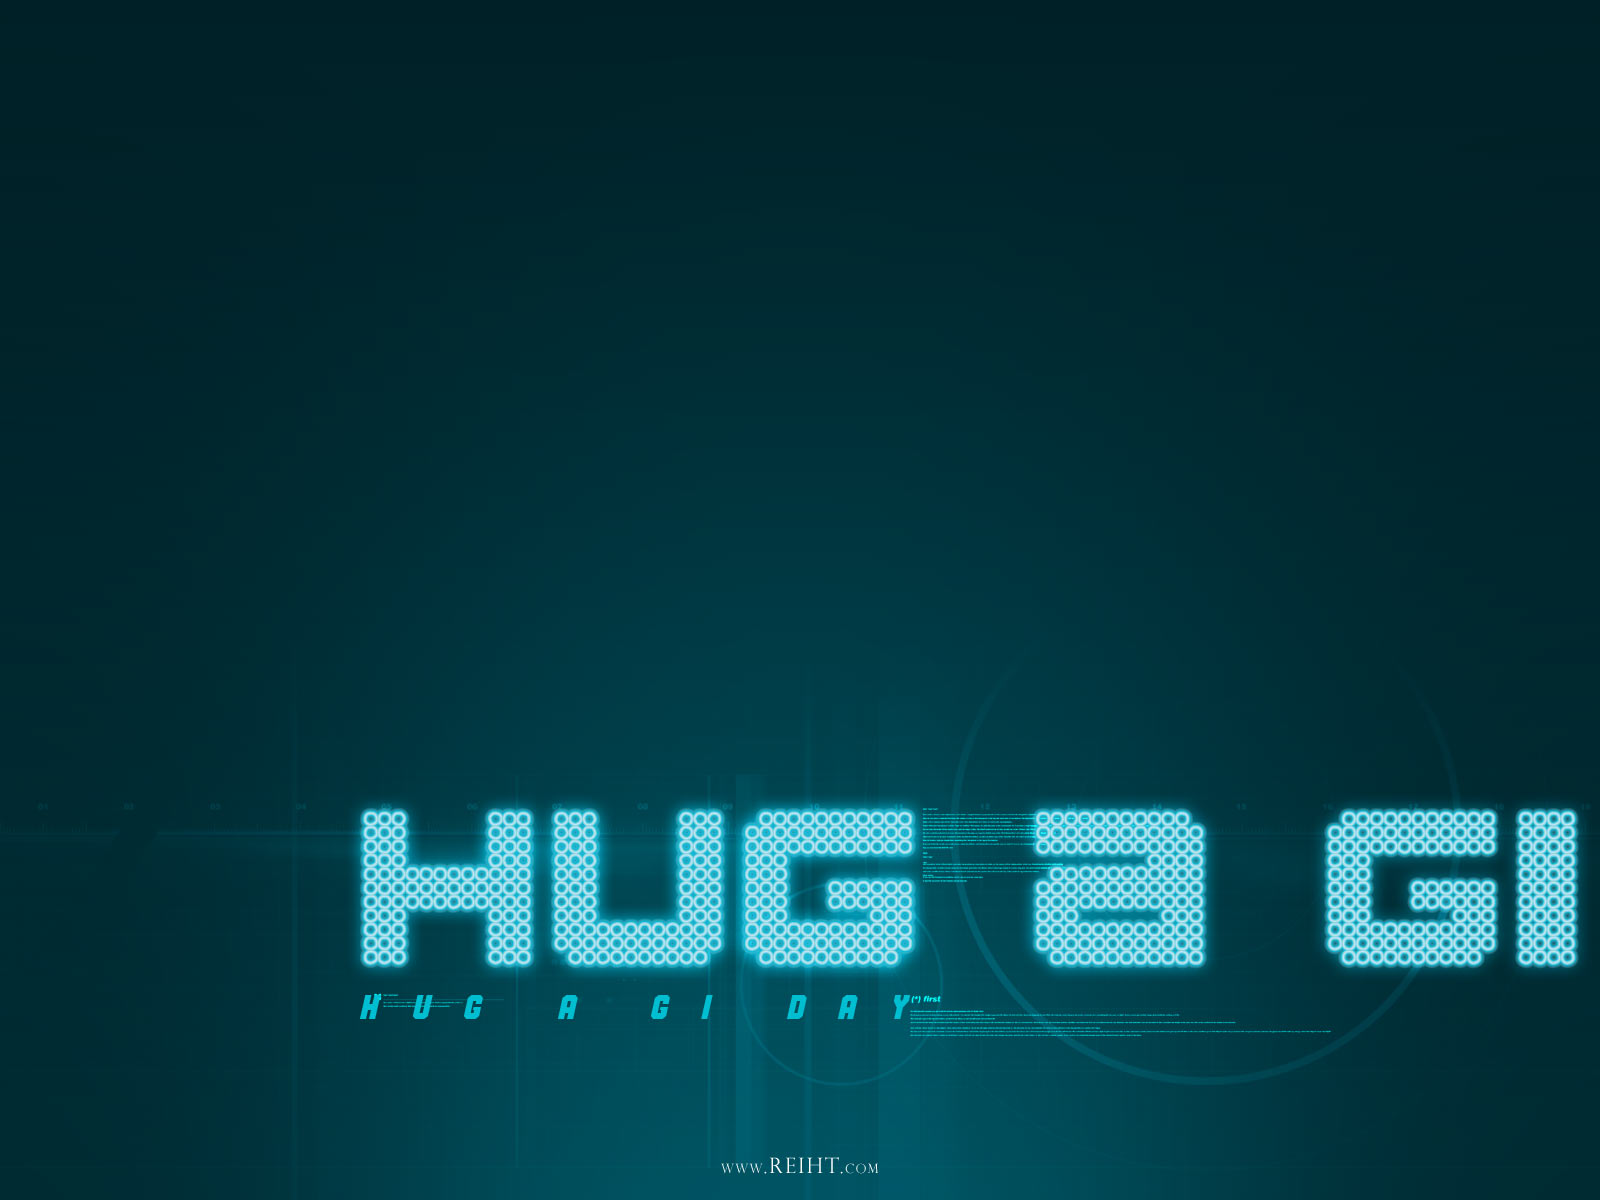 Hug A GI Day background for PPT powerpoint . Designed in blue color ...